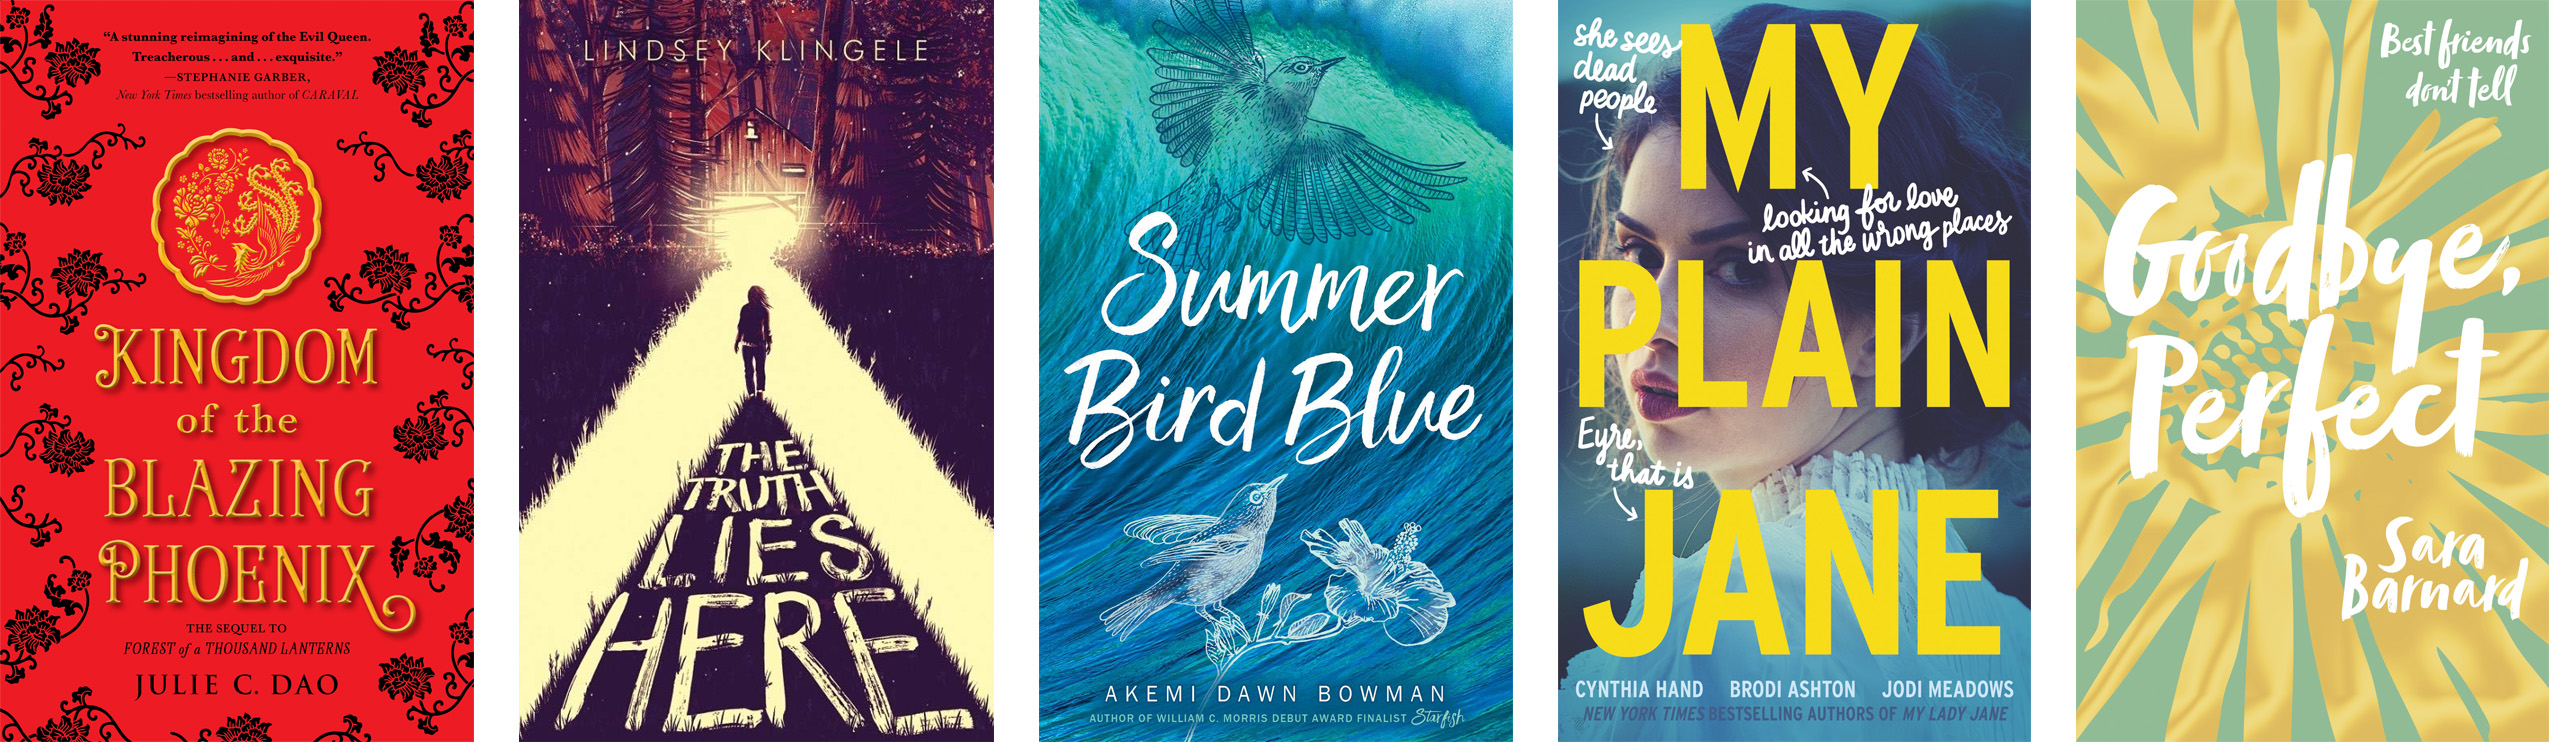 10 Amazing Ya Book Covers From 2018 The Nerd Daily